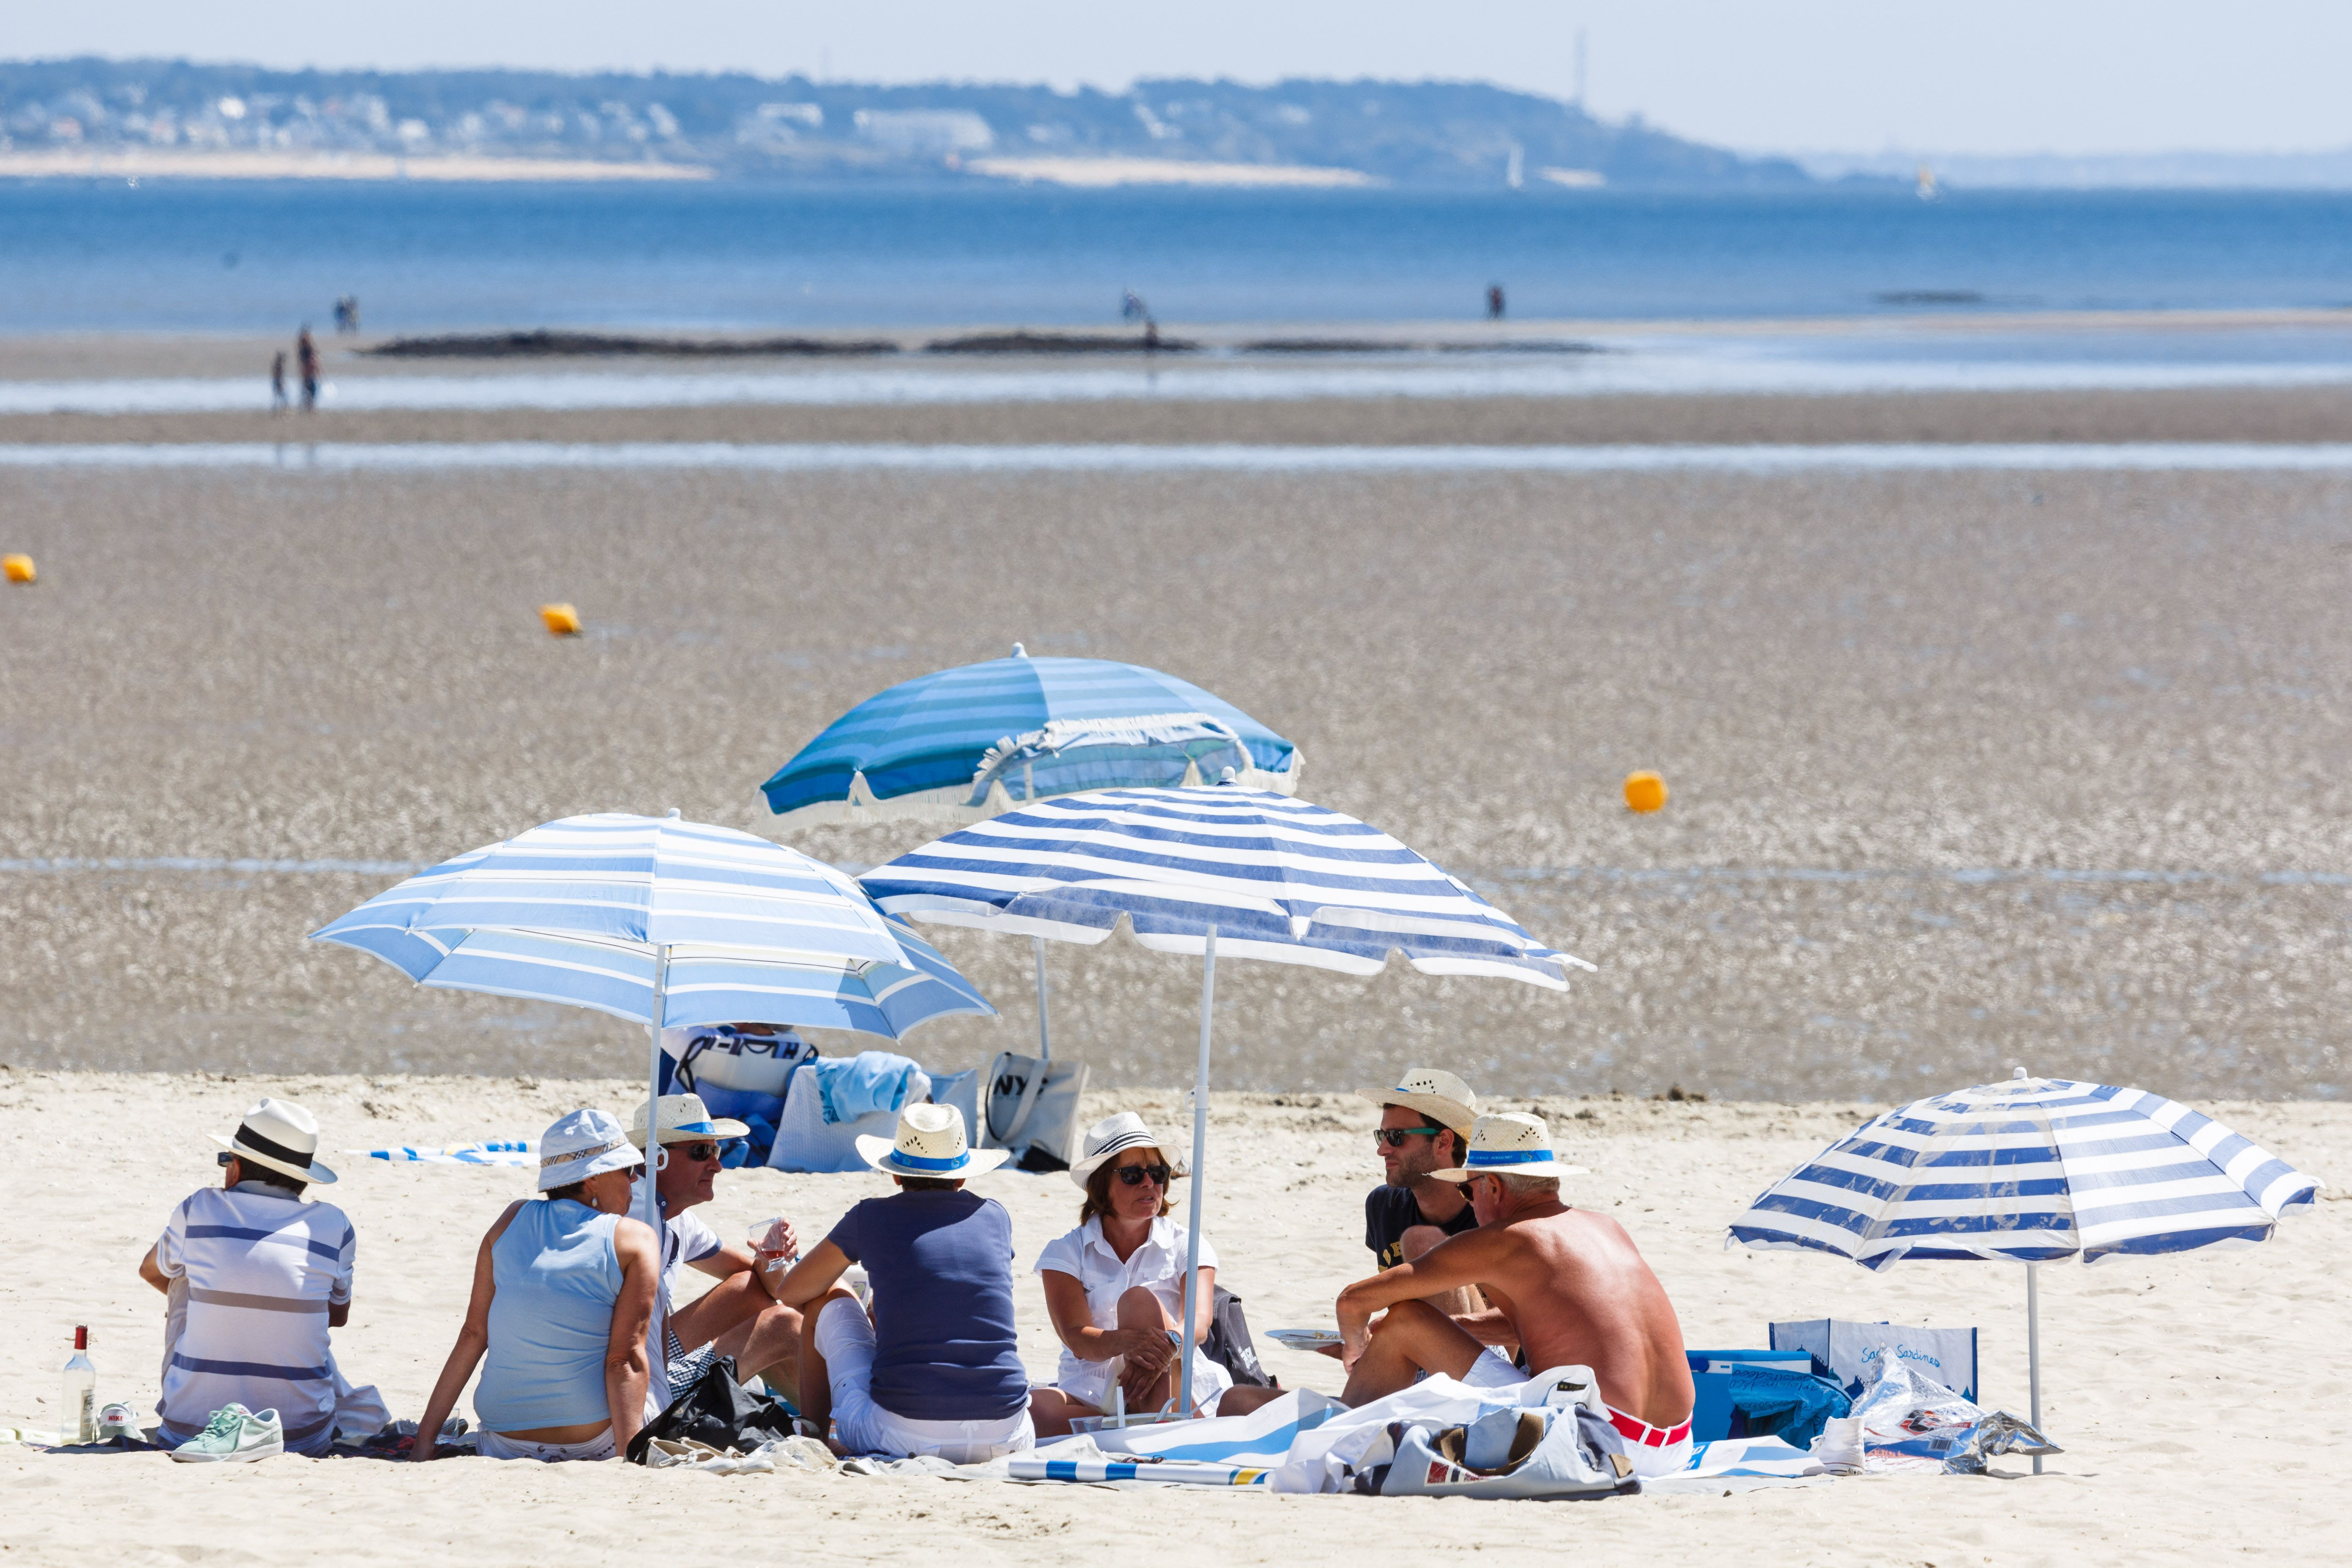 Beachgoers gathered beneath blue-and-white-striped umbrellas at La Baule-Escoublac, Brittany